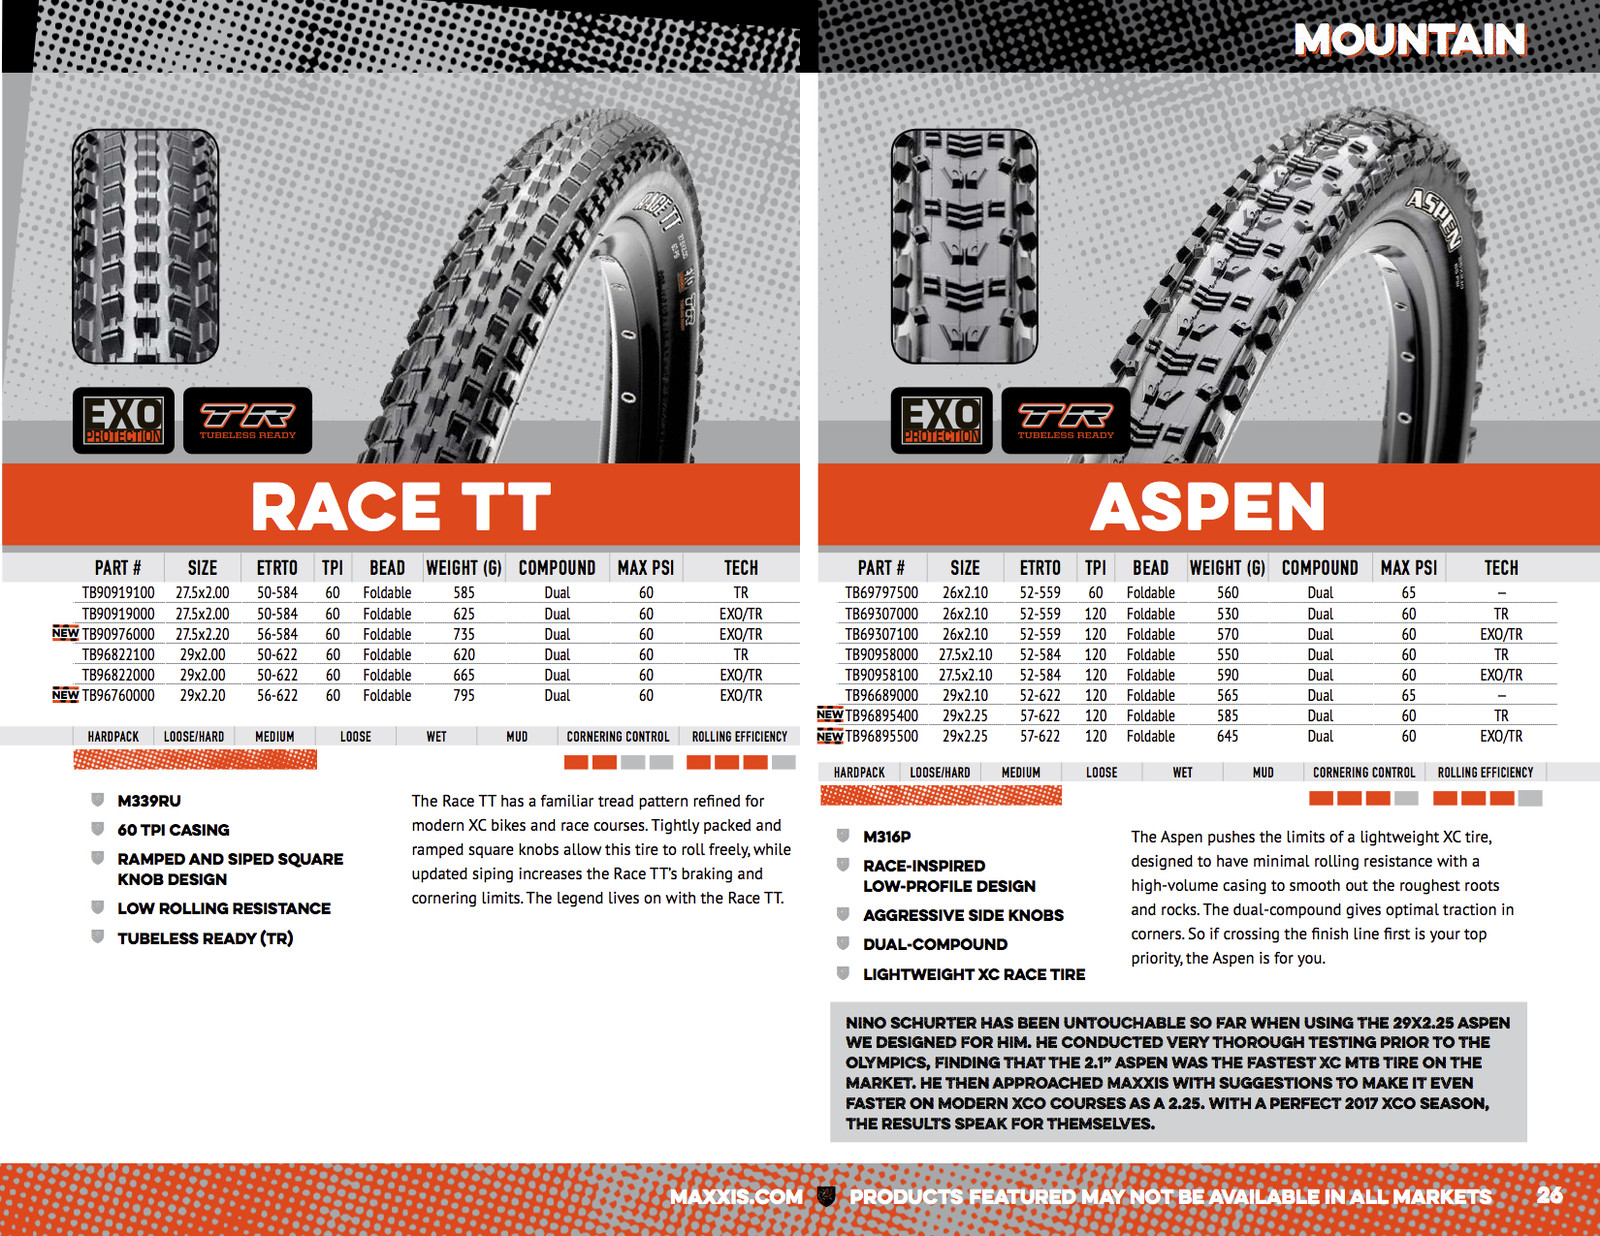 Tire Ratings Guide >> The Complete Guide to Maxxis Mountain Bike Tires